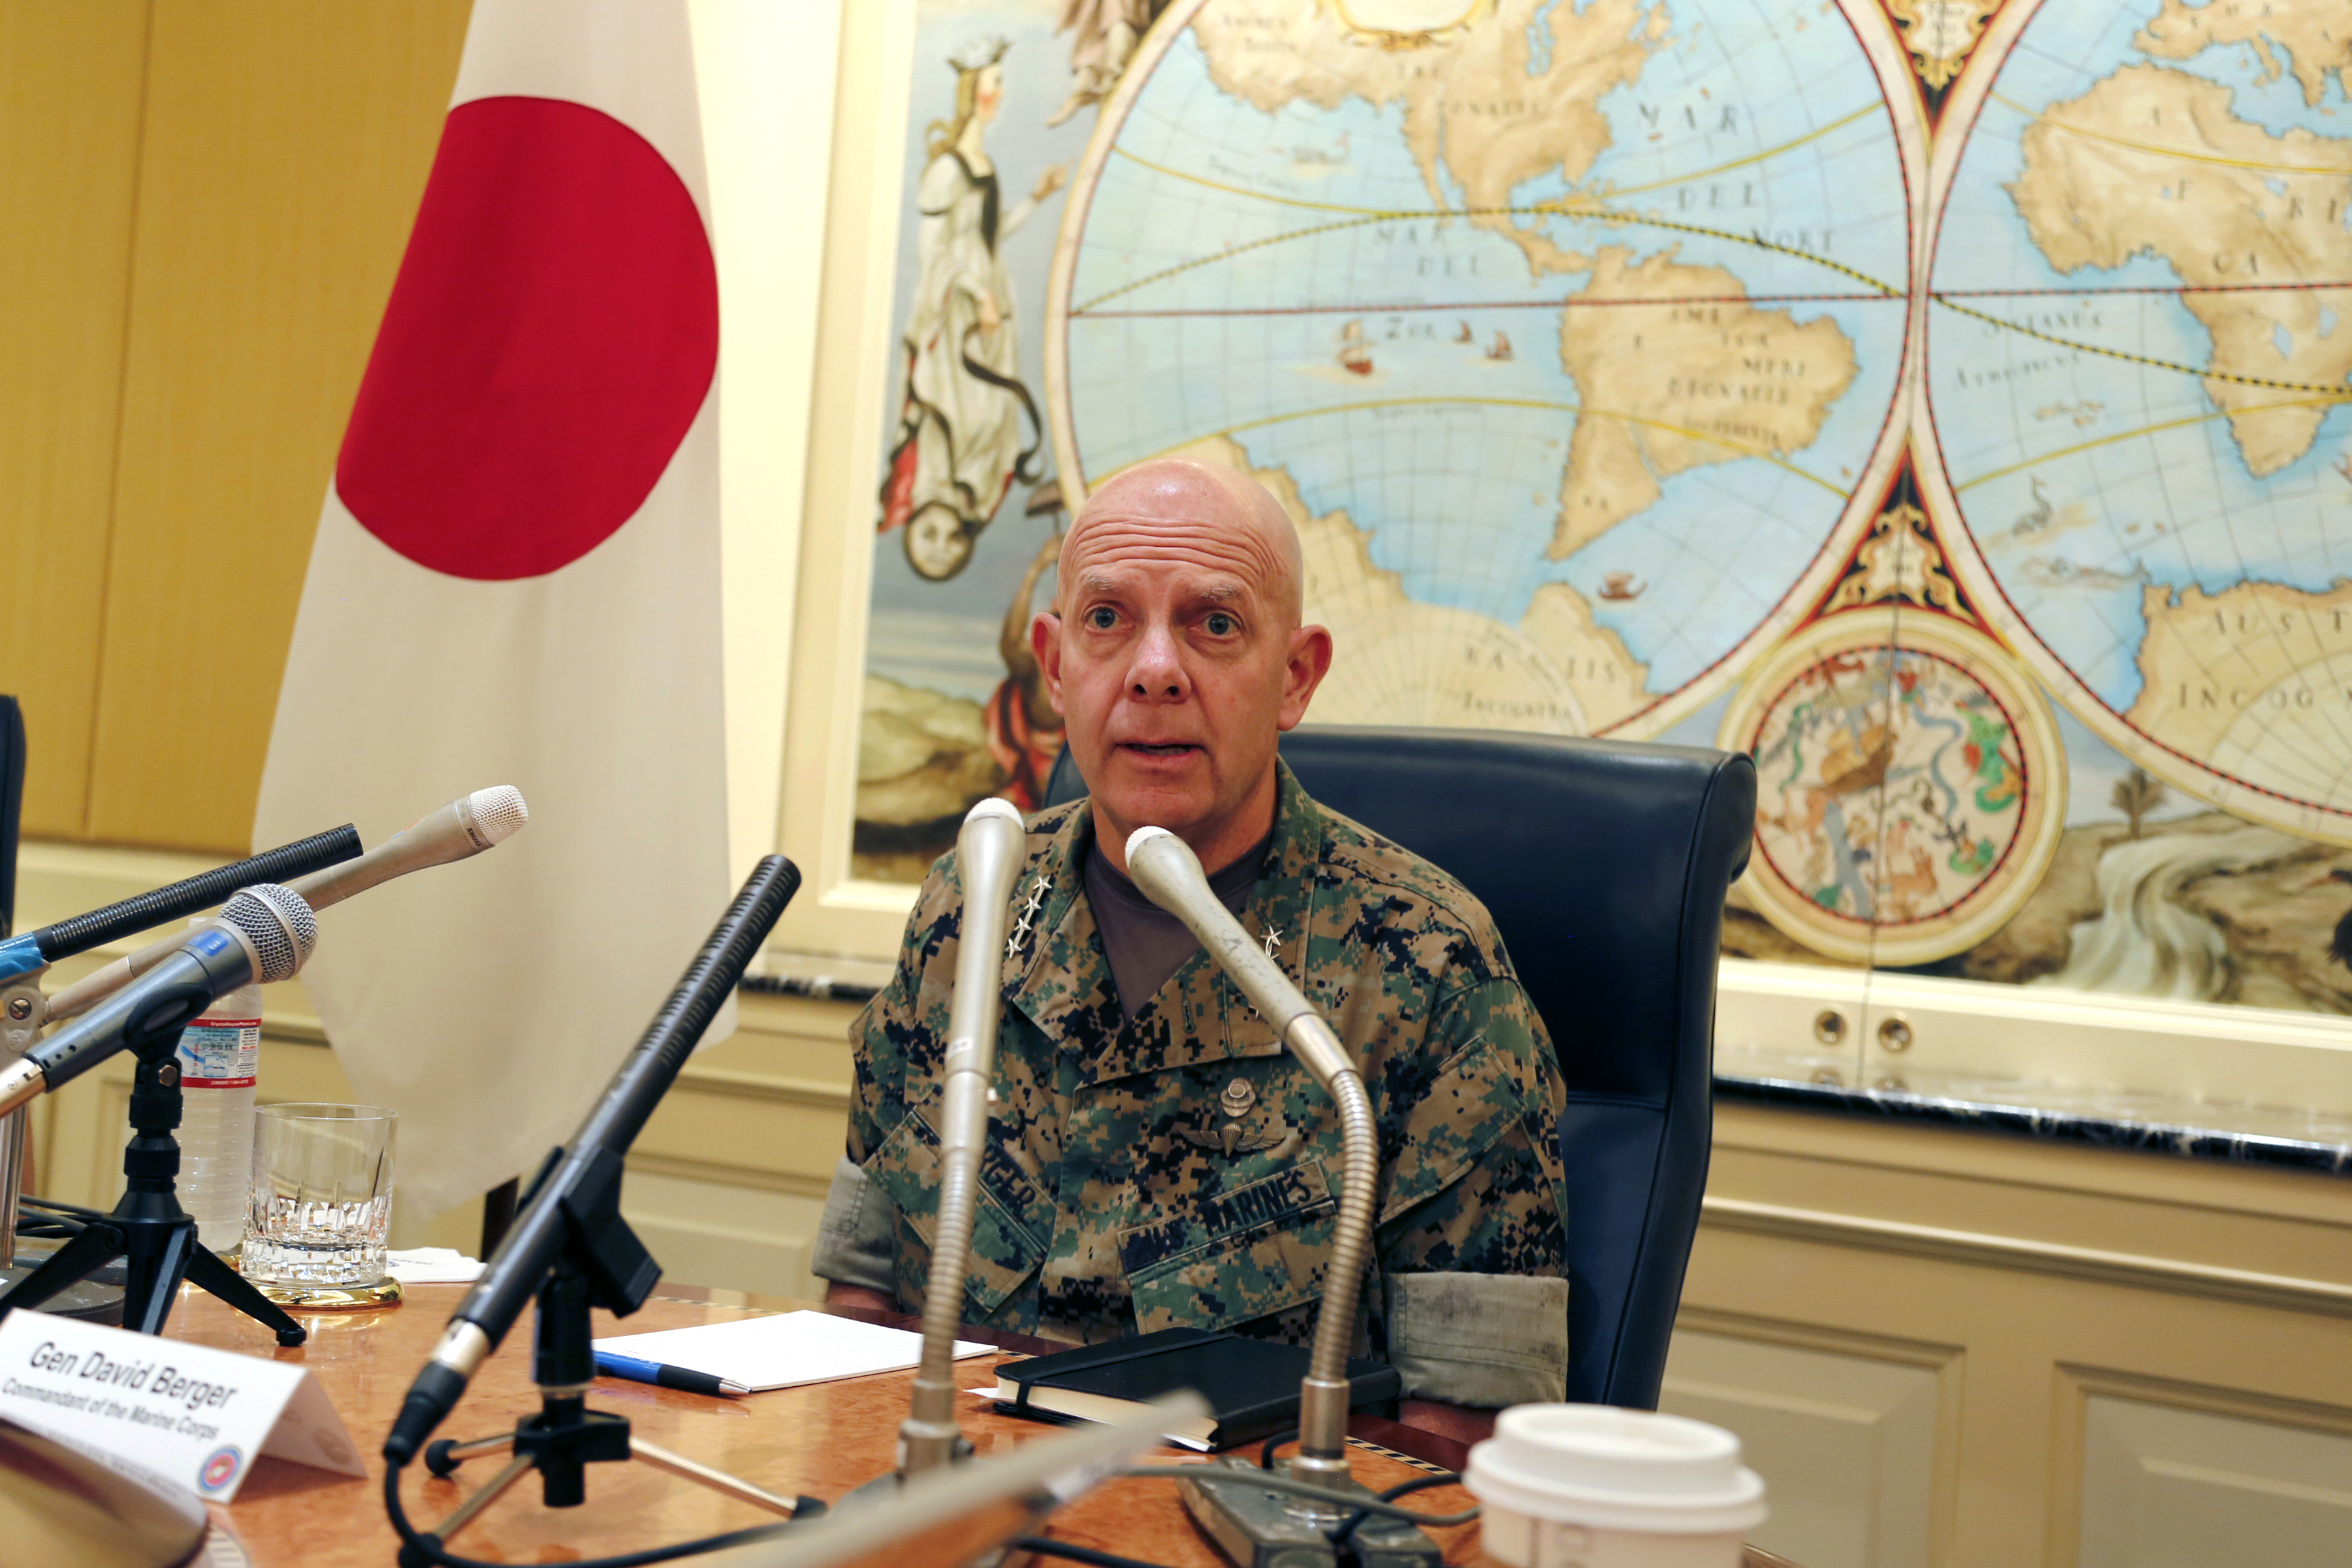 Gen. David Berger, the new U.S. Marines commandant, speaks during a press conference in Tokyo, Wednesday, Aug. 21, 2019. (Yuri Kageyama/AP)